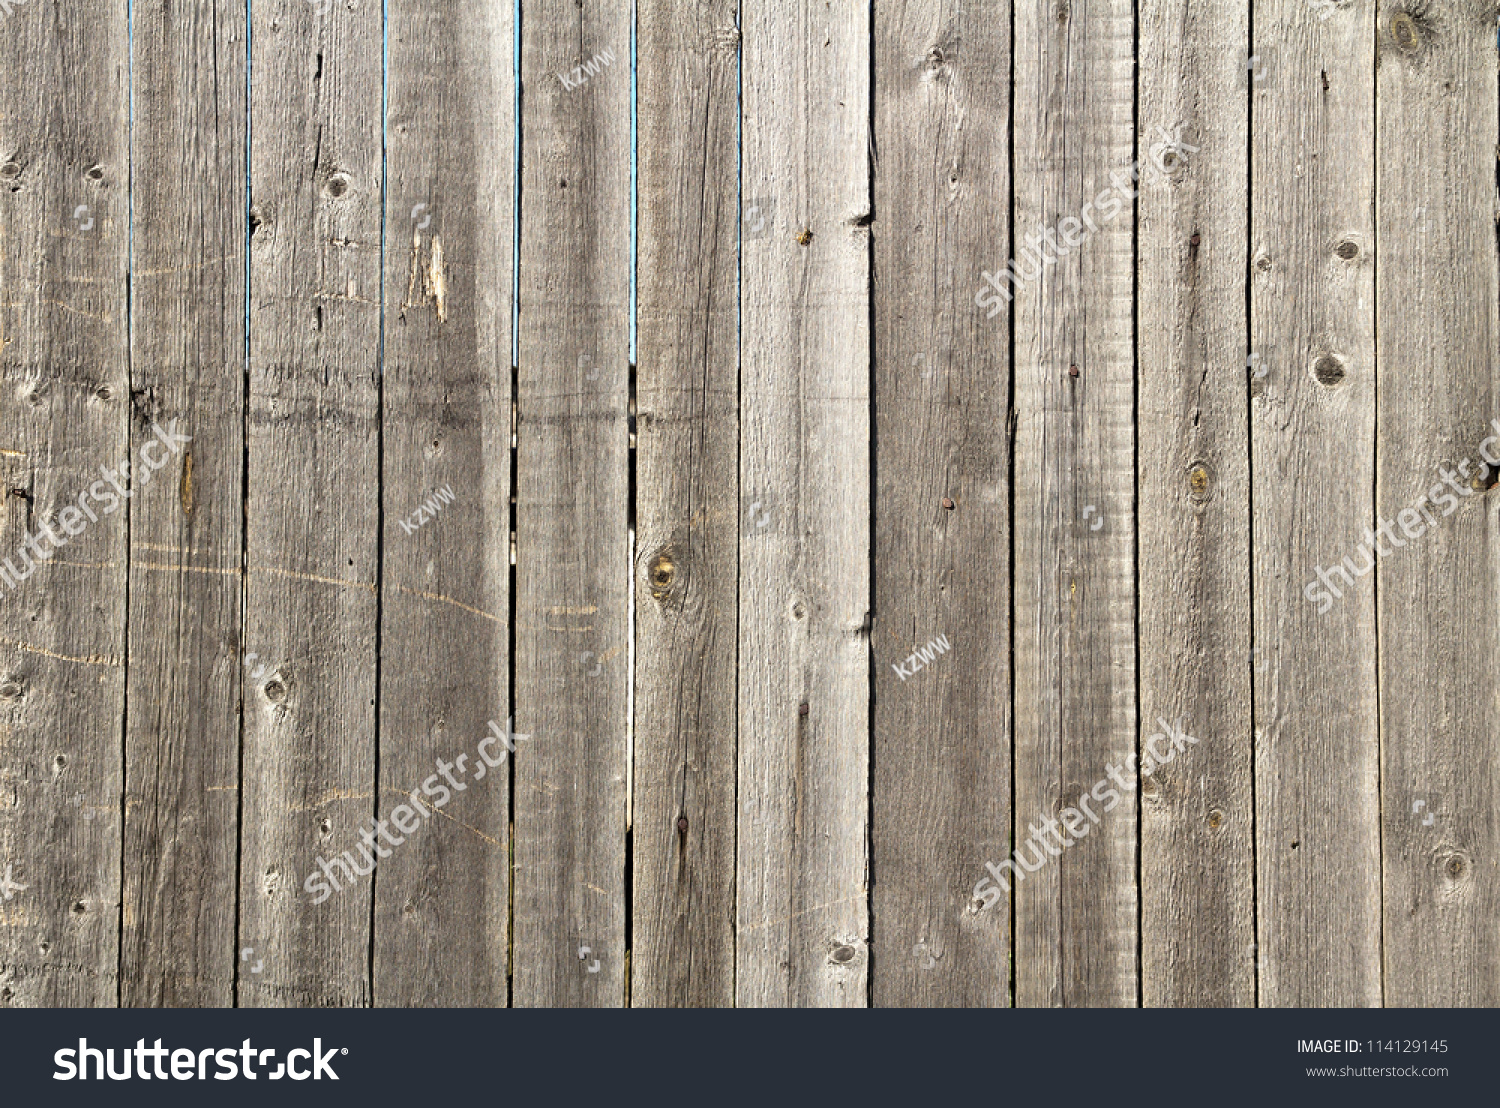 Old barn wood board stock photo 114129145 shutterstock for Where can i buy old barn wood